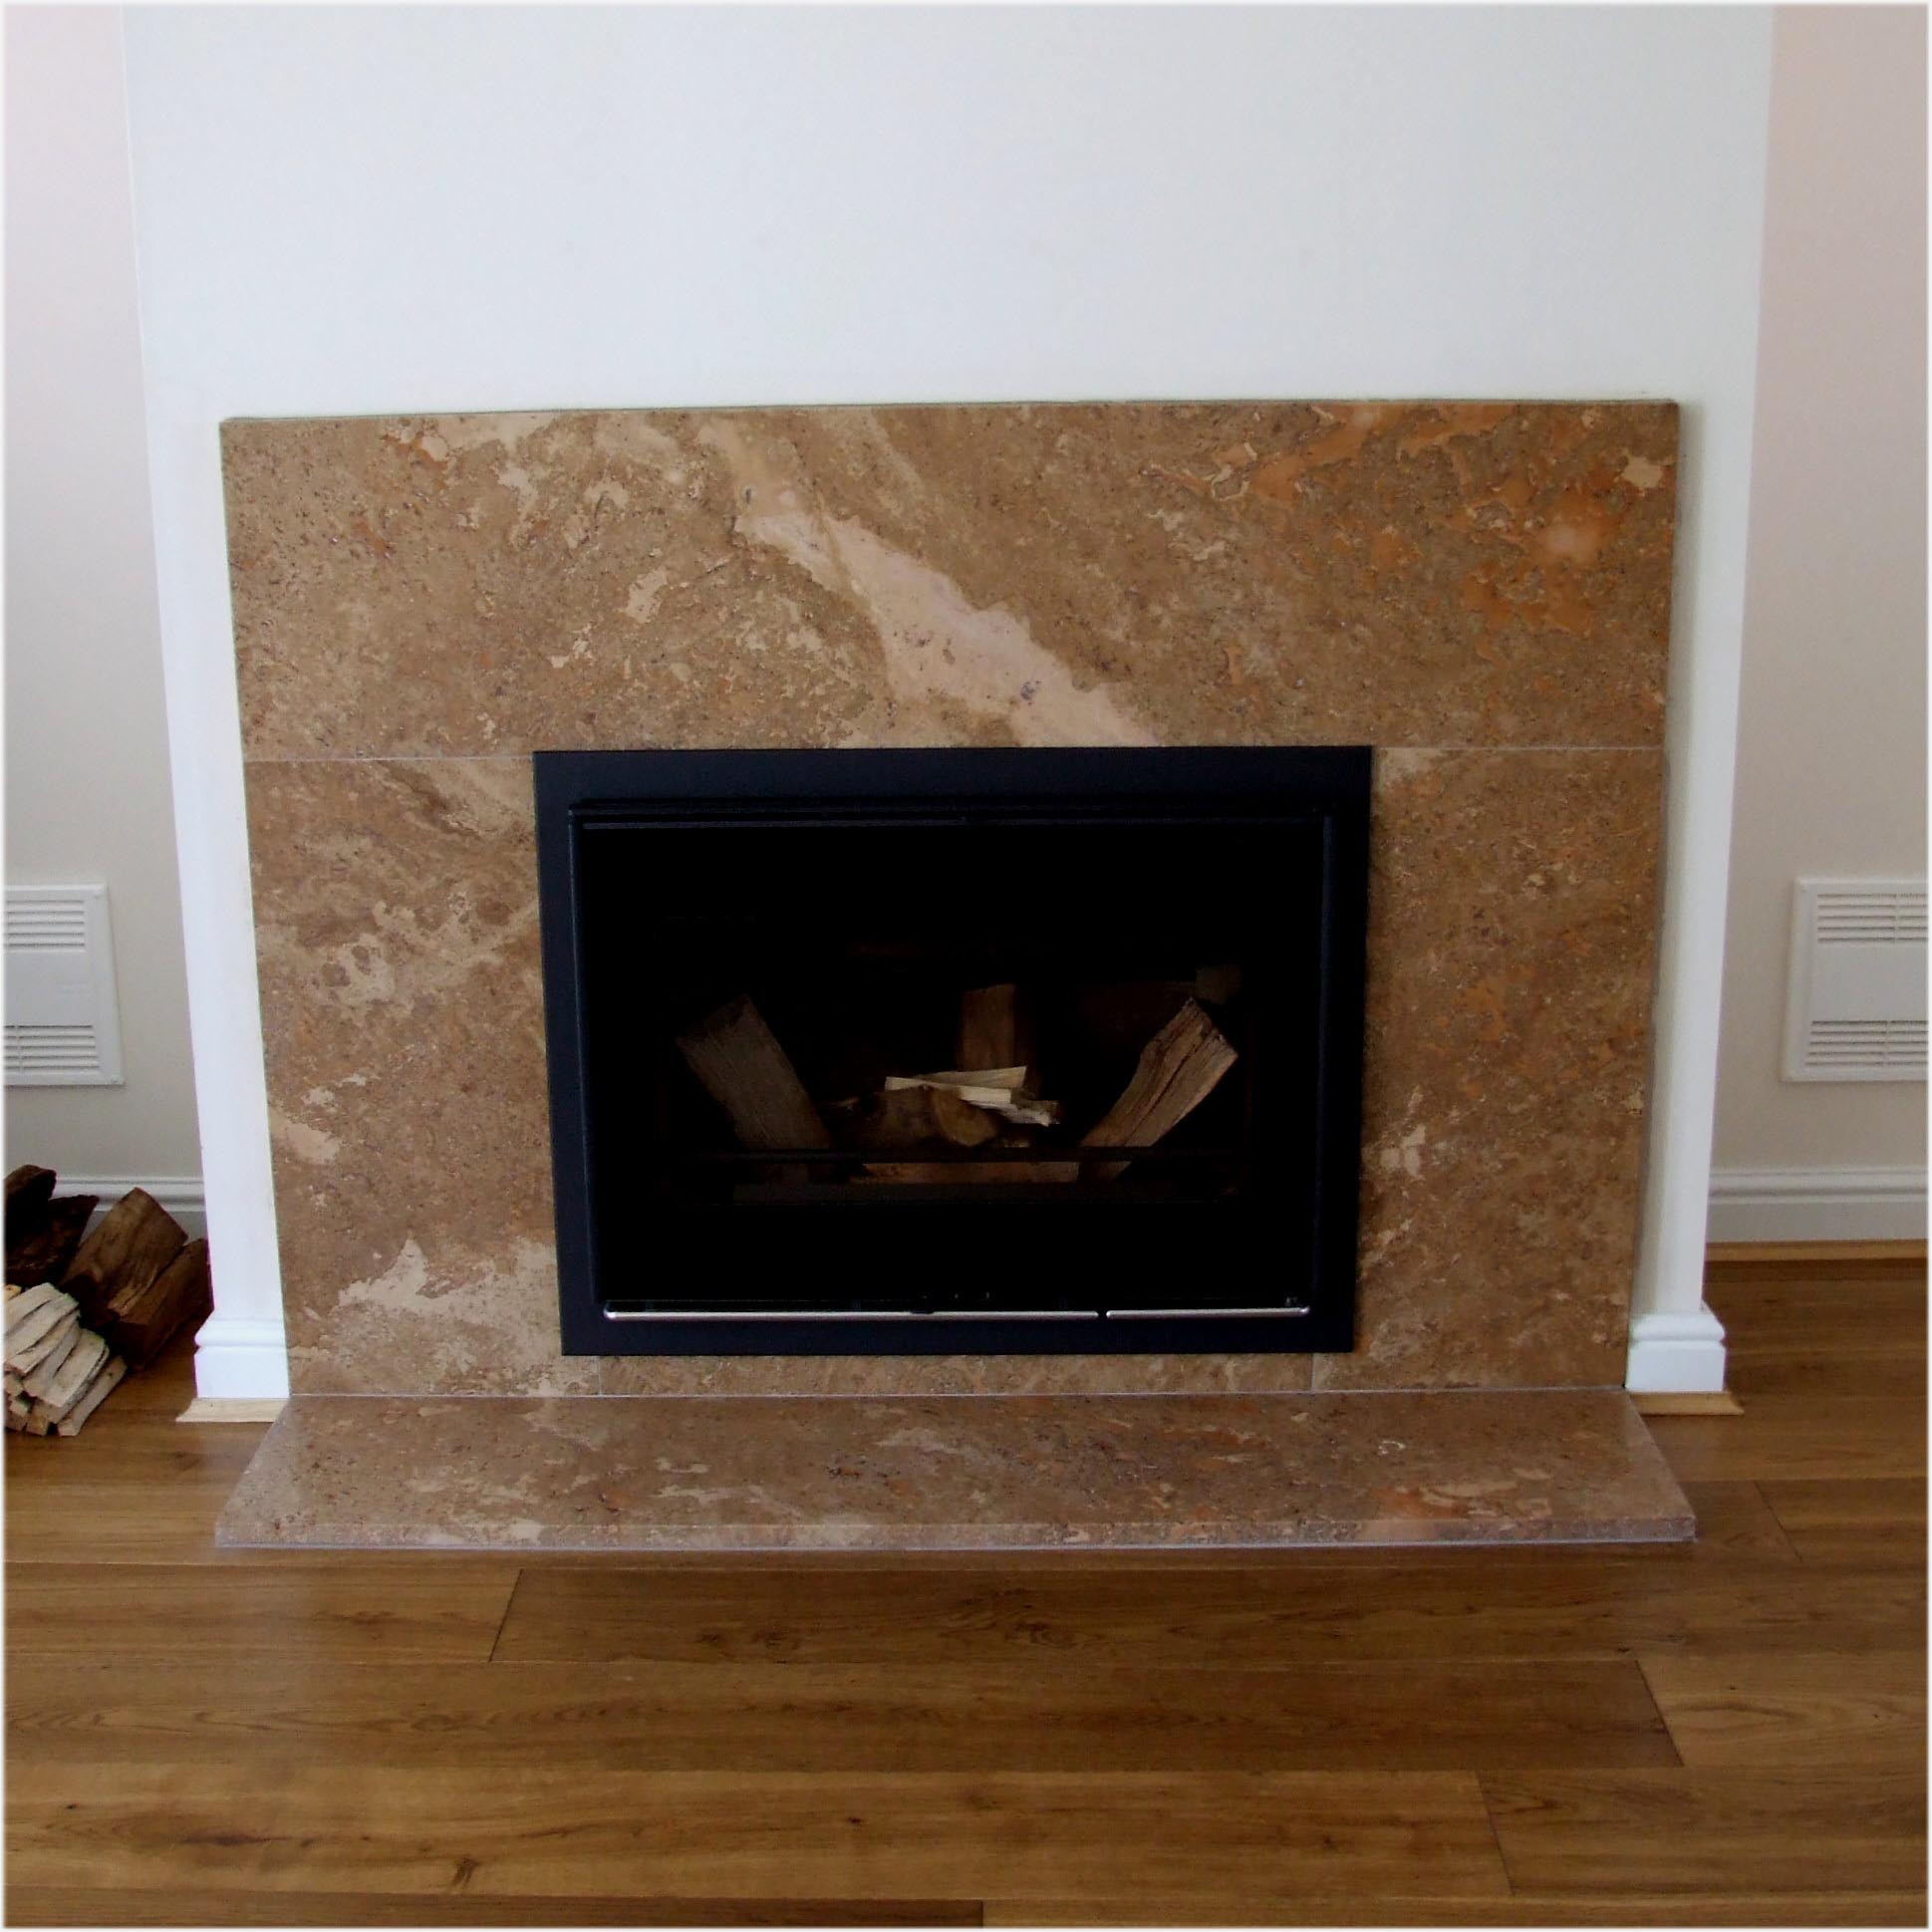 Fireplace hearth stone tiles fireplace designs for Marble for fireplace surround